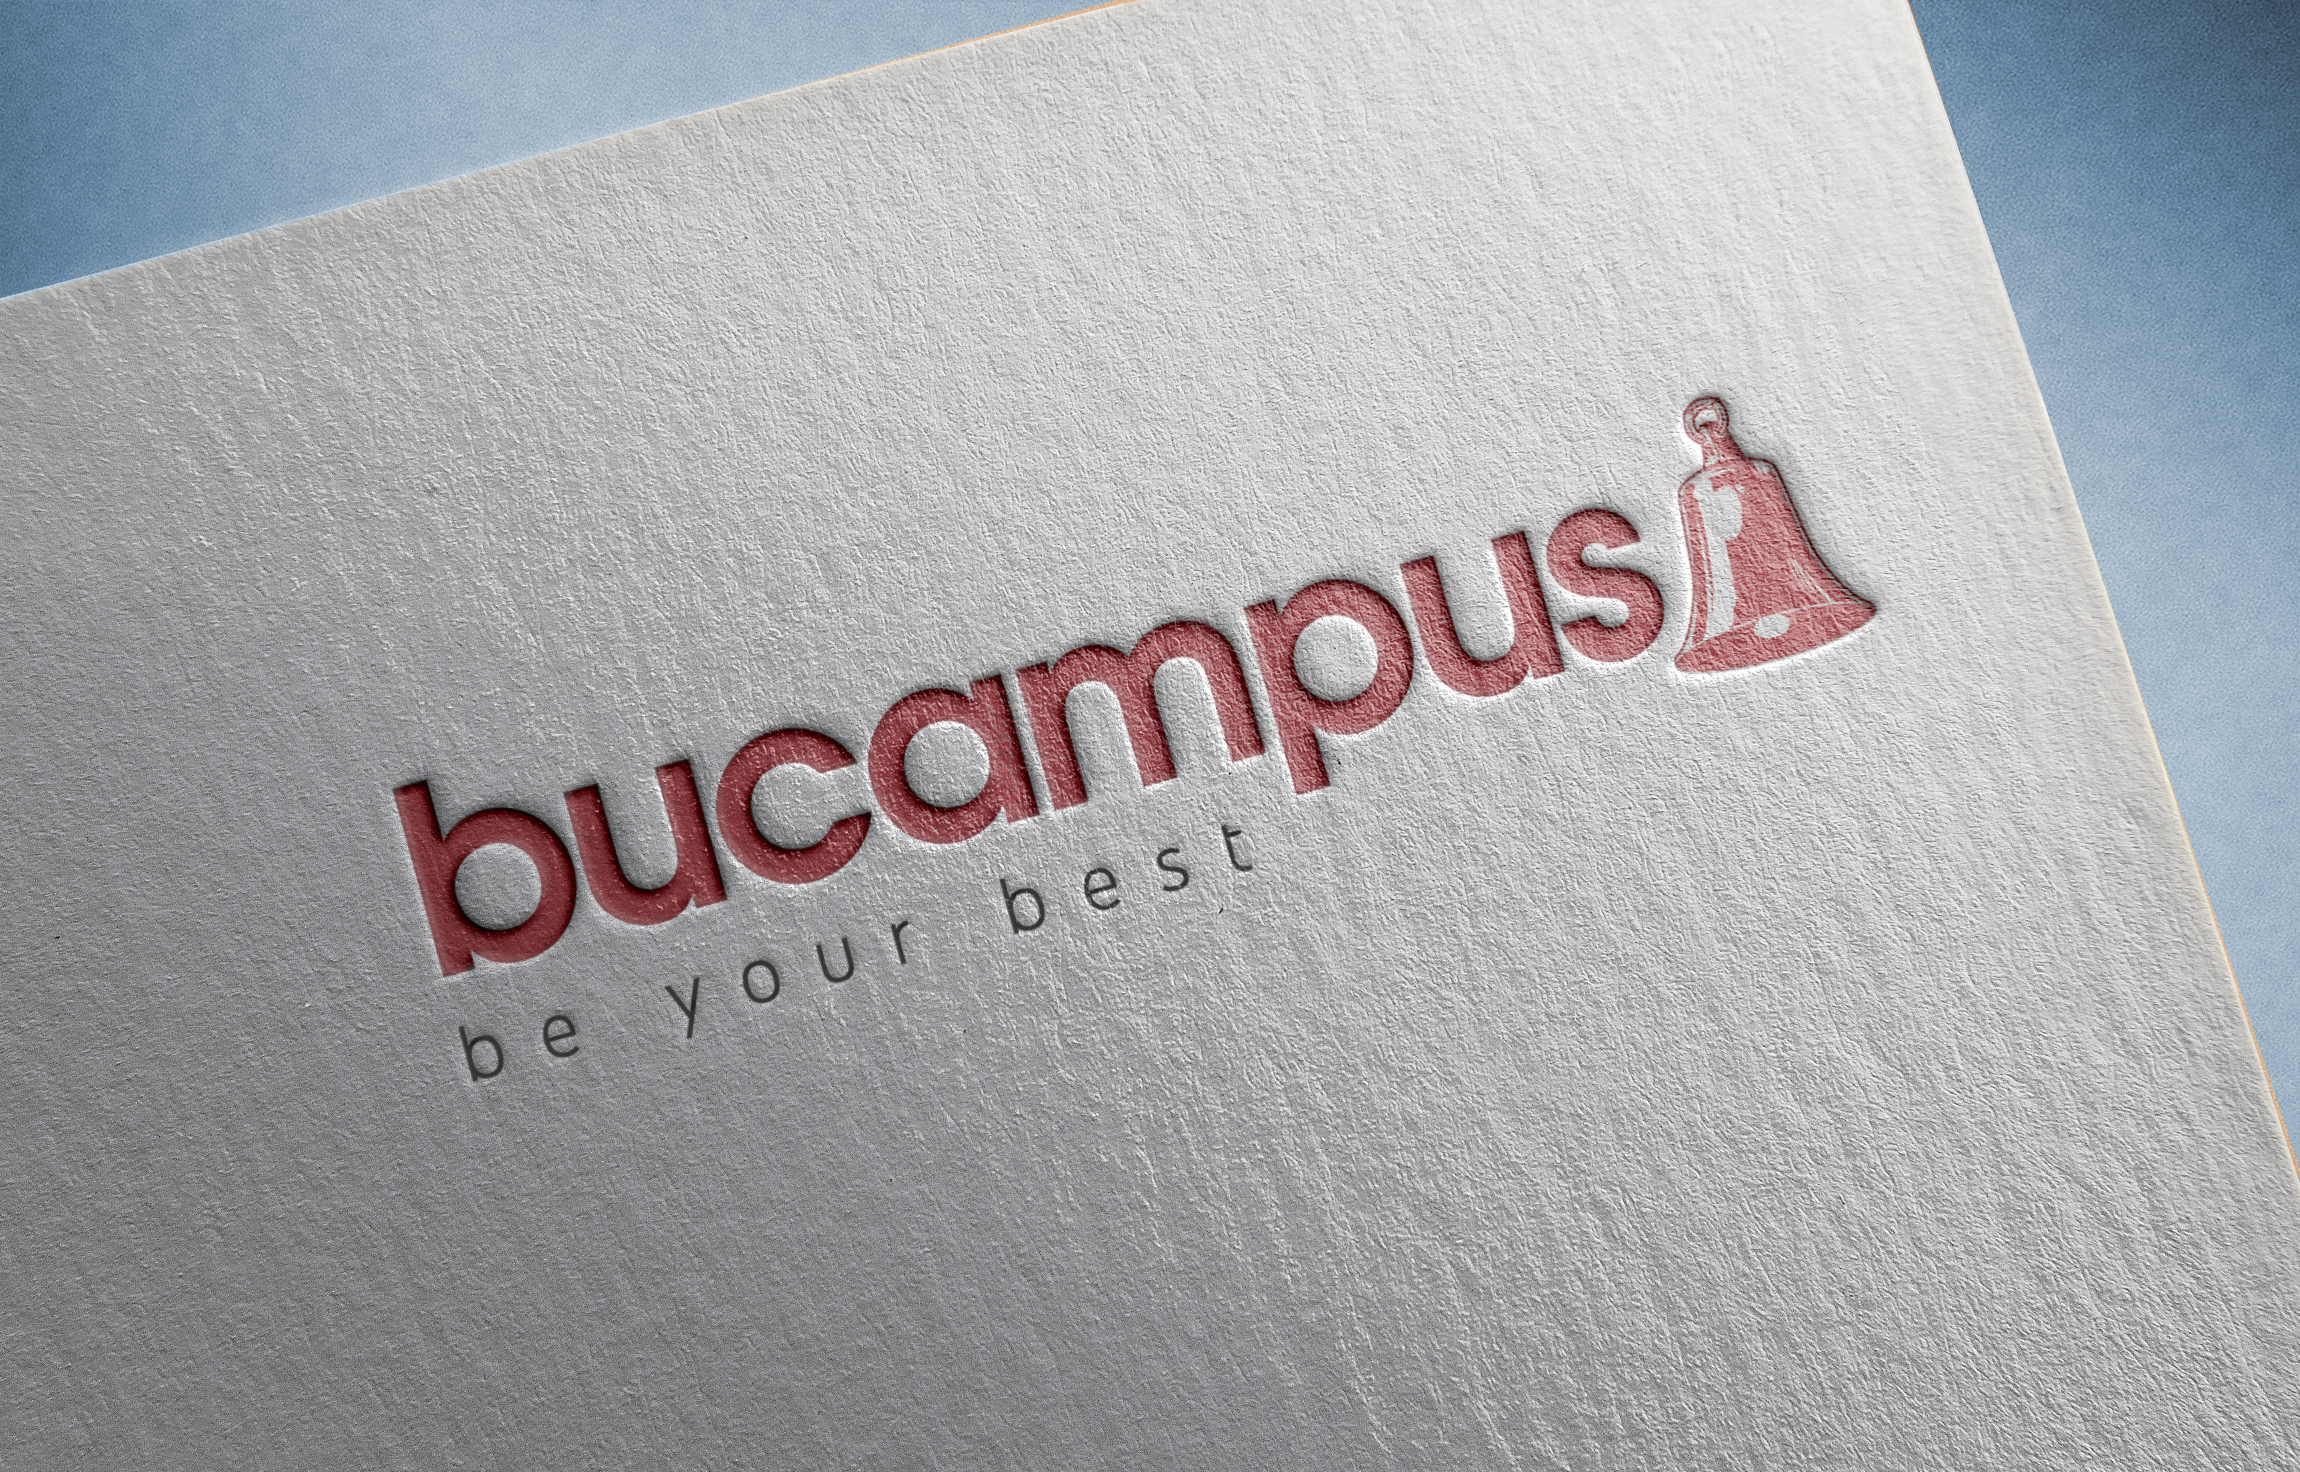 https://puntodizgi.com/project/bucampus-logo-calismasi/